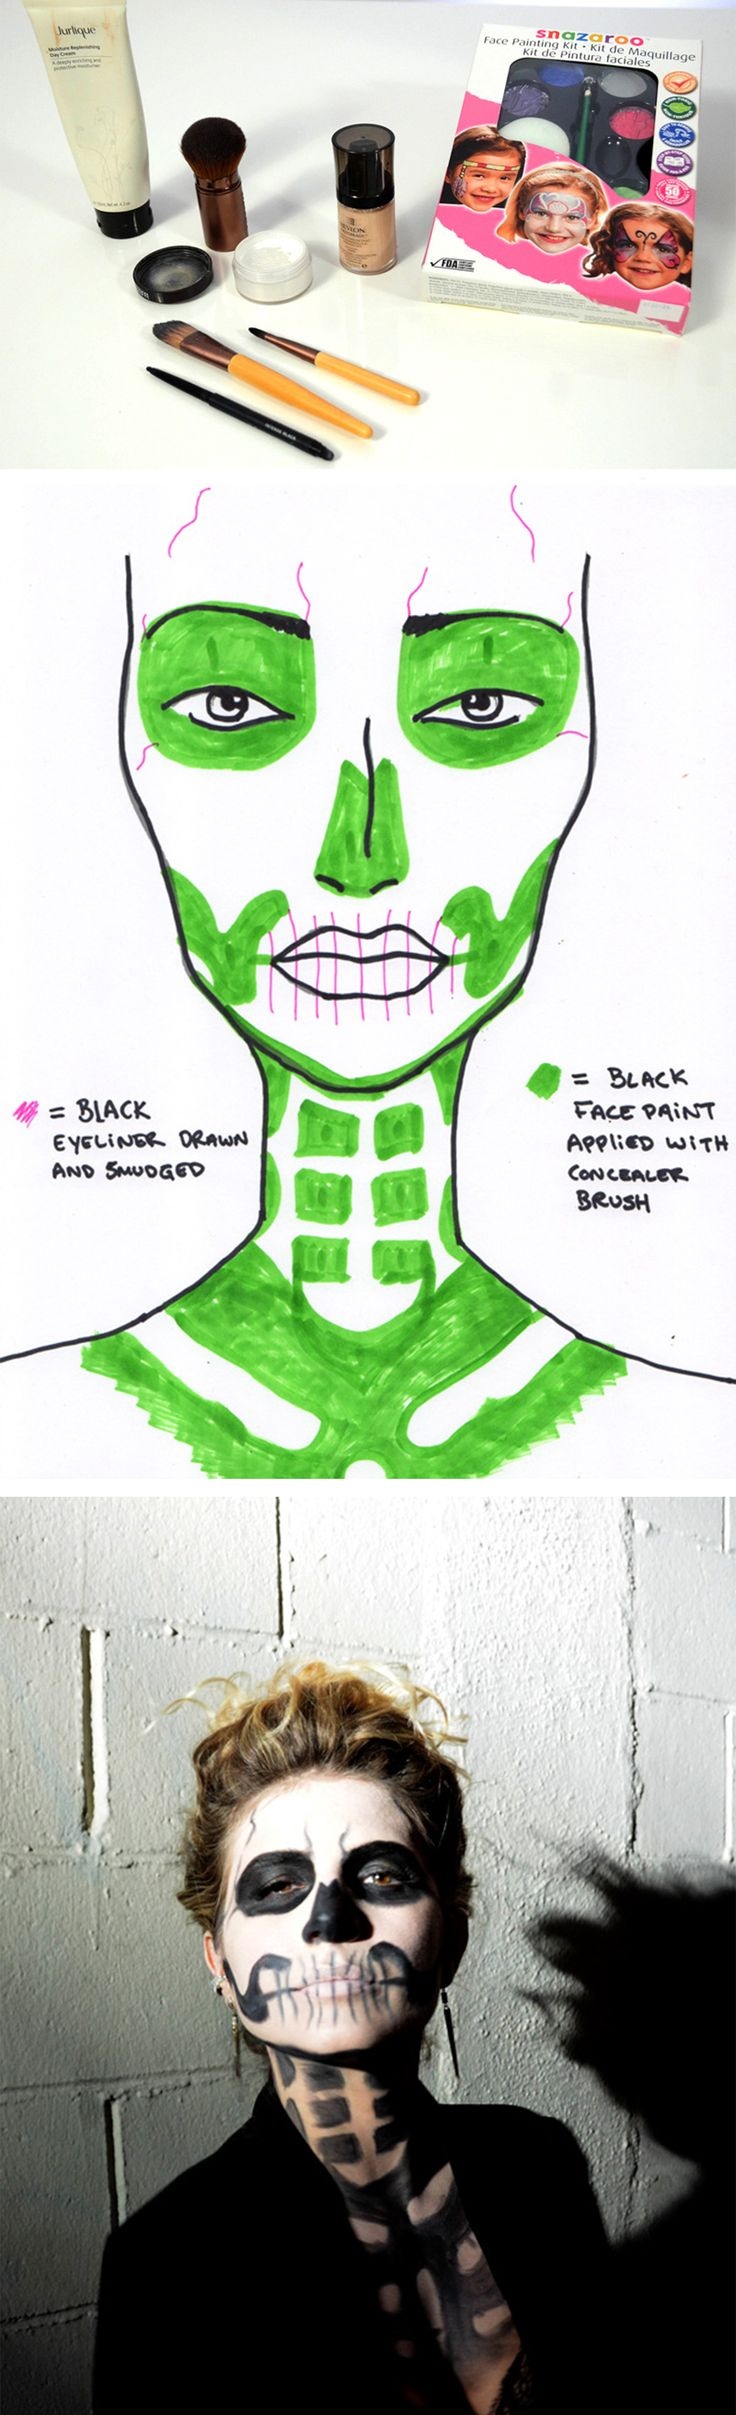 Print this skeleton makeup diagram to get an easy, scary-chic look for Halloween parties or last minute DIY costumes!